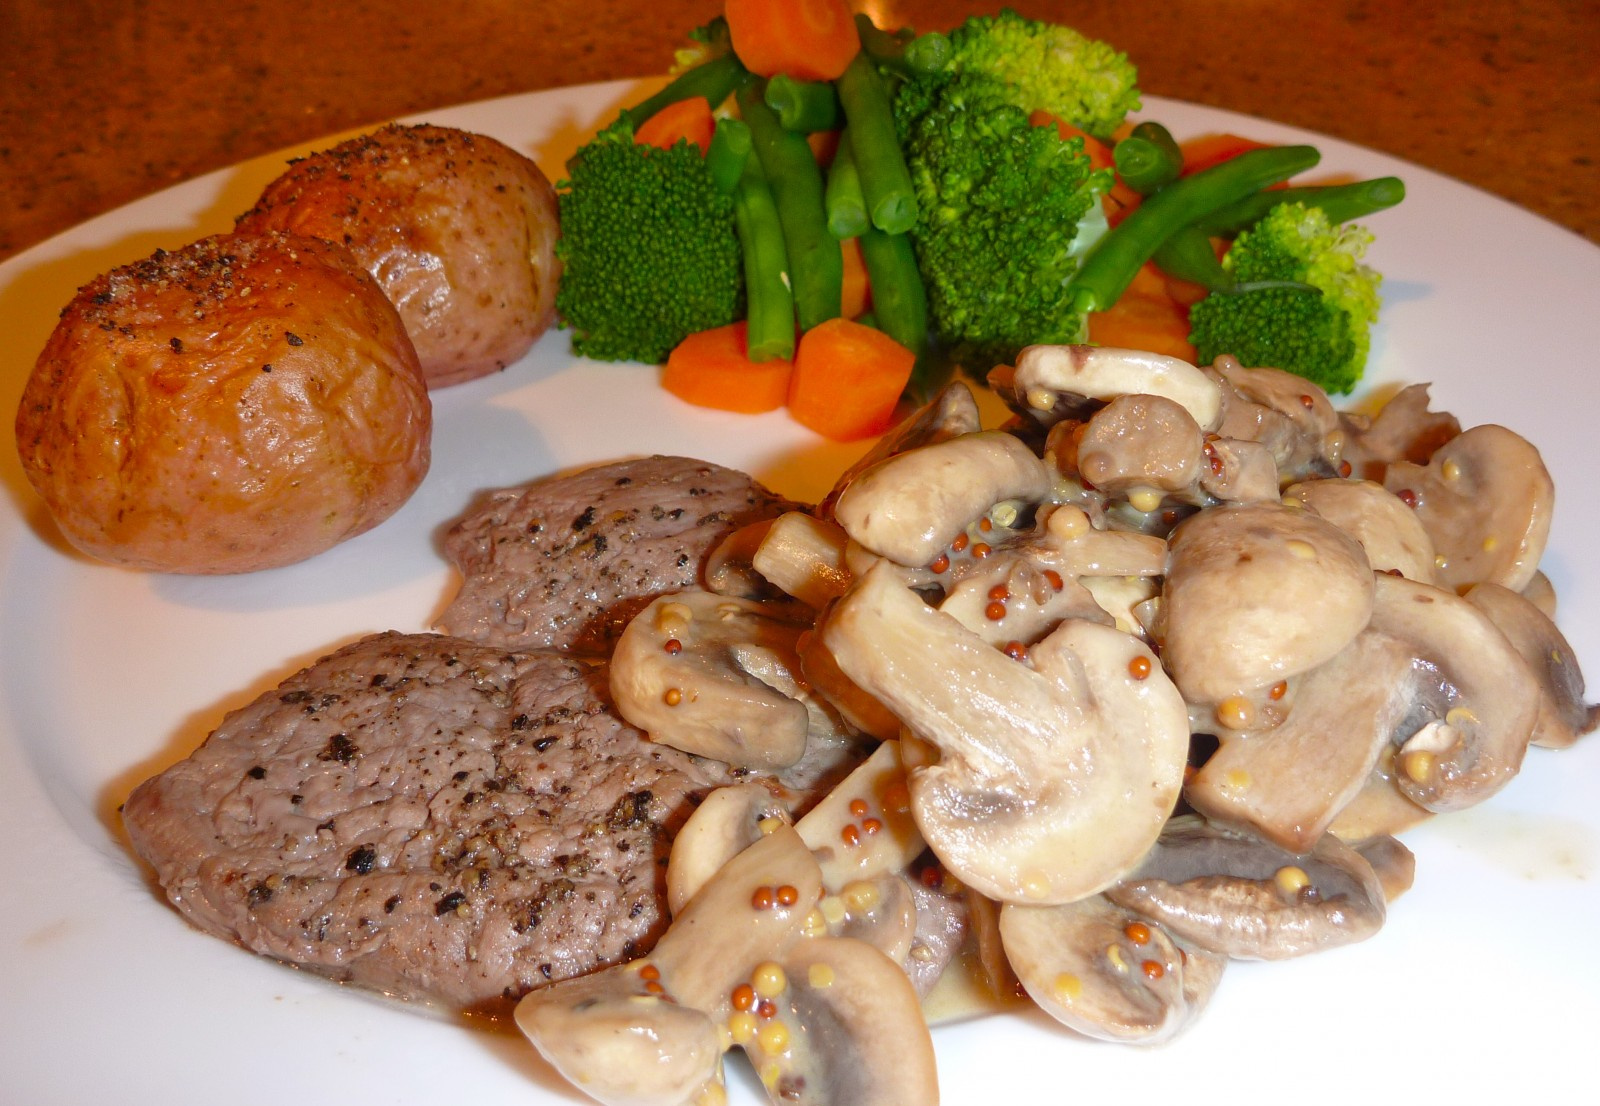 Steak and low calorie creamy mustard sauce